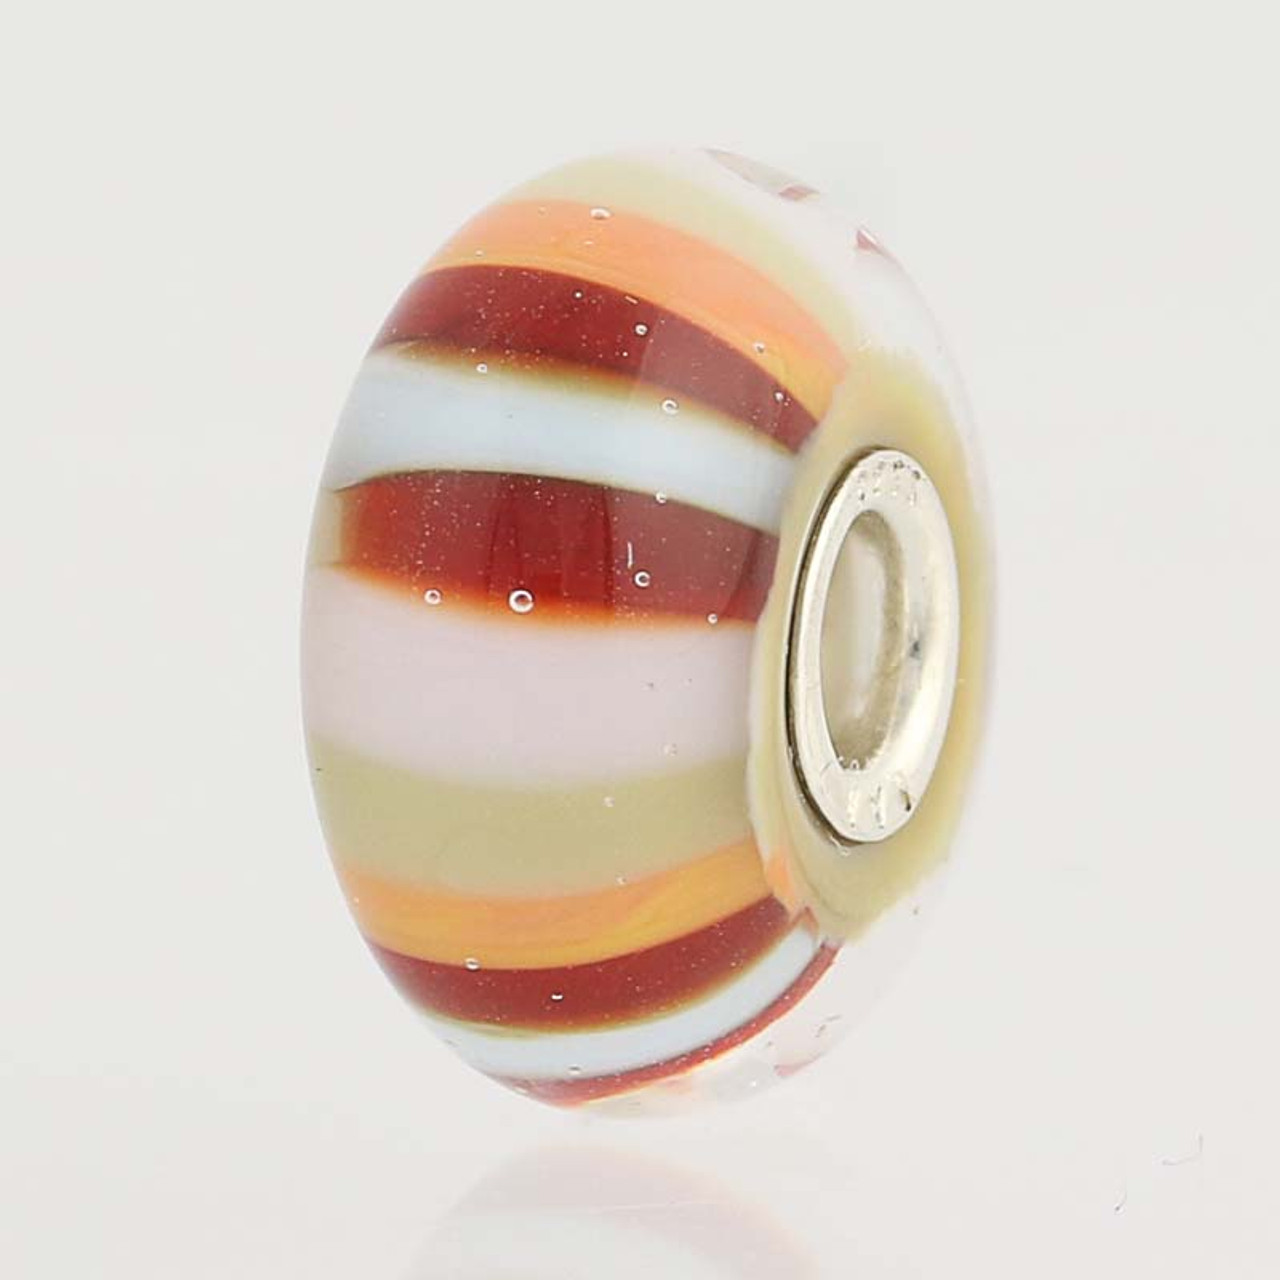 Green Striped Murano Glass Bead Charm Black Bow Jewelry Sterling Silver